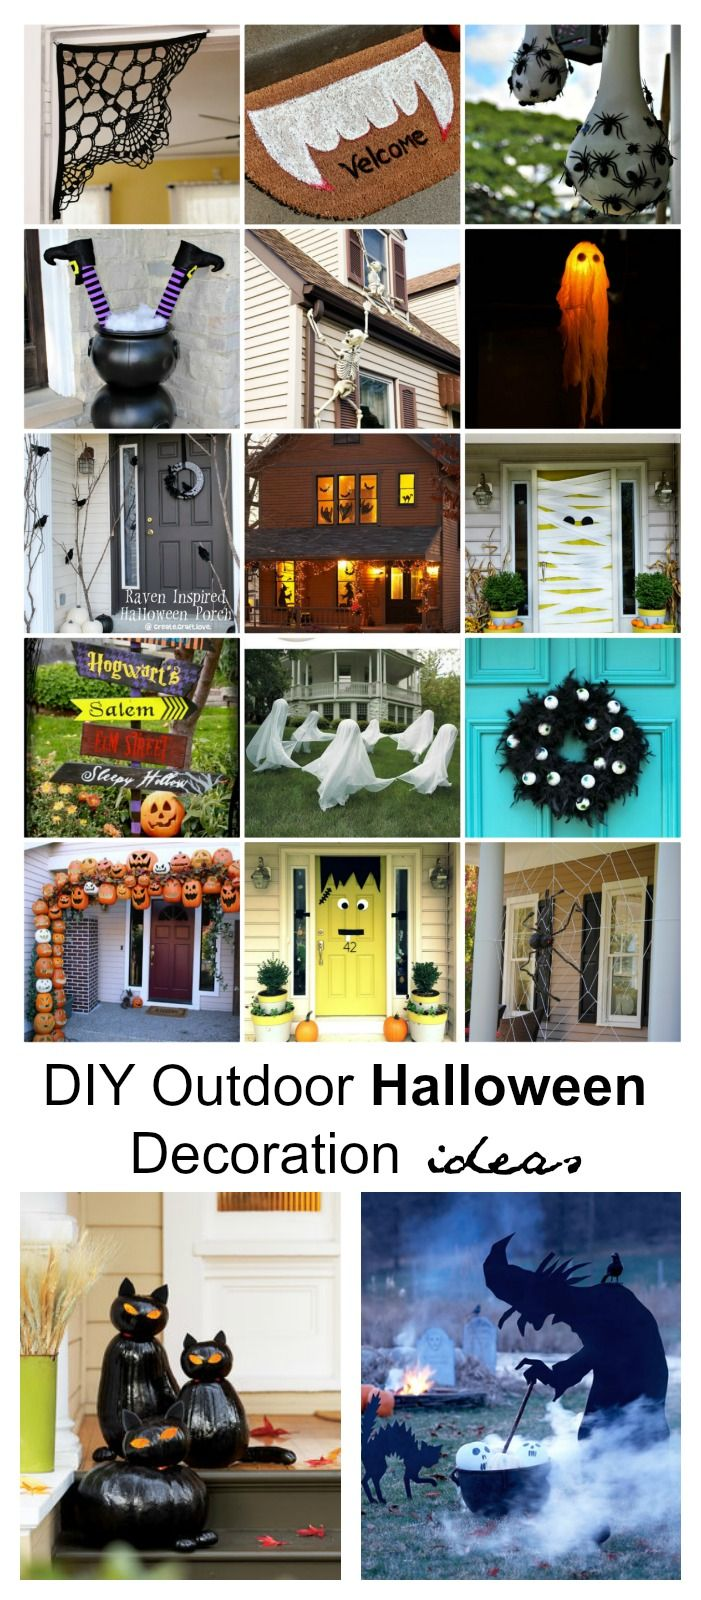 DIY Outdoor Halloween Decorations Diy outdoor halloween - Halloween Yard Decorations Ideas